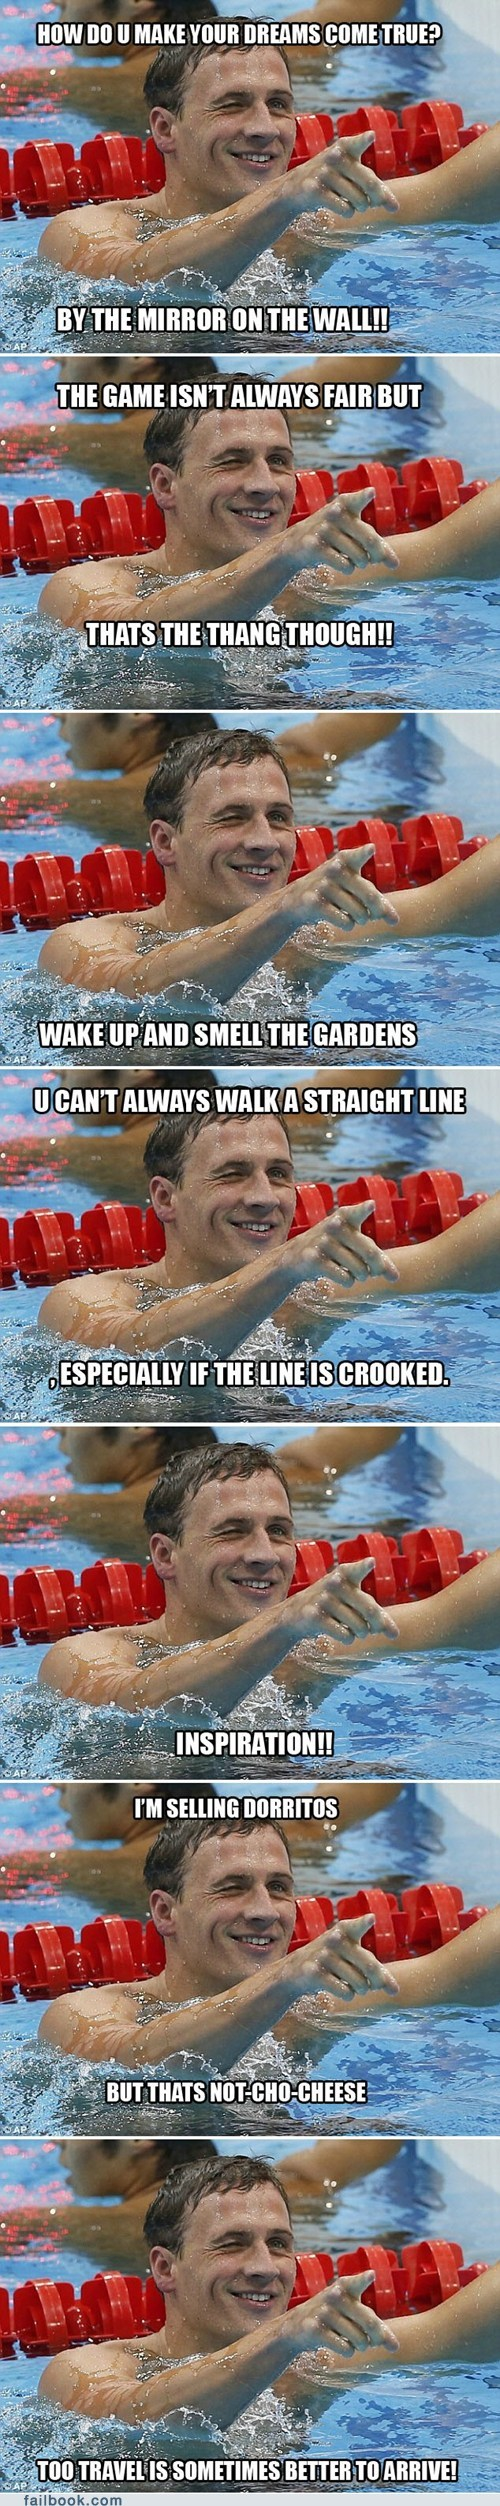 Ryan Lochte's Deeply Profound Tweeting